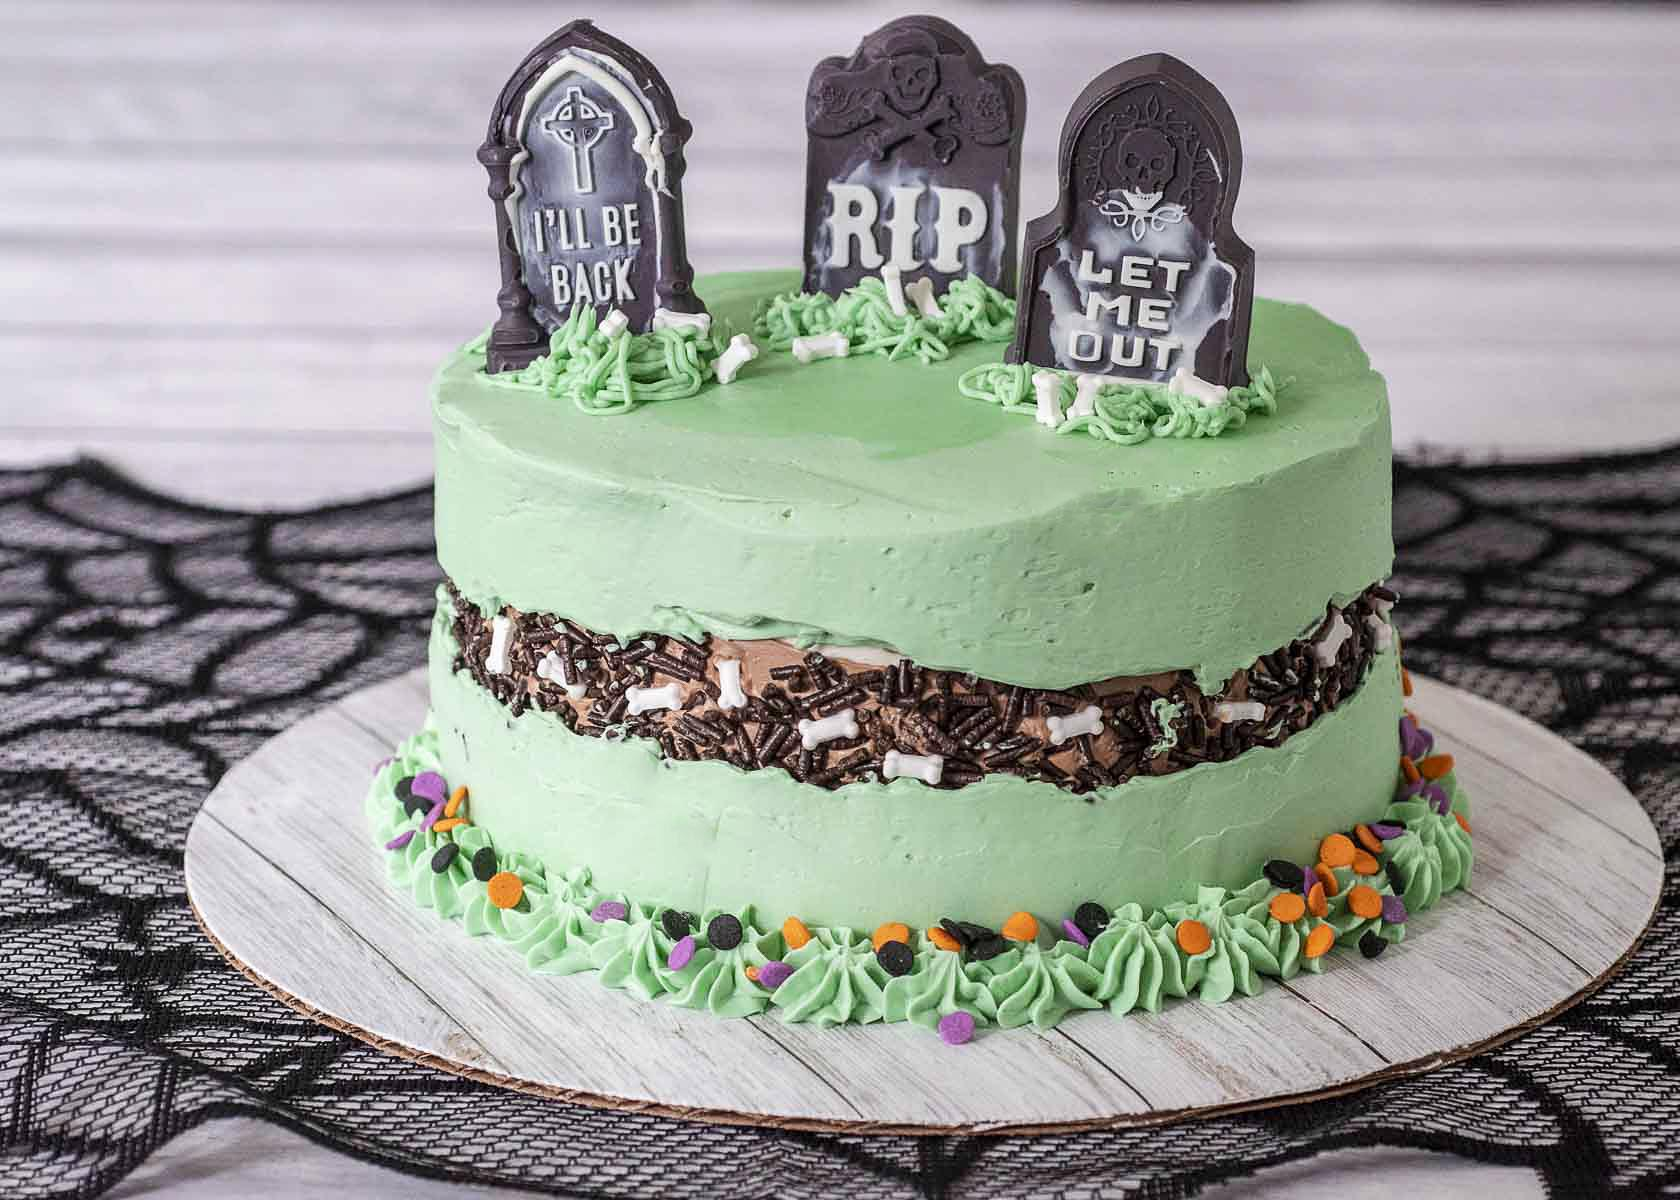 A shot of a fully decorated graveyard fault line cake.